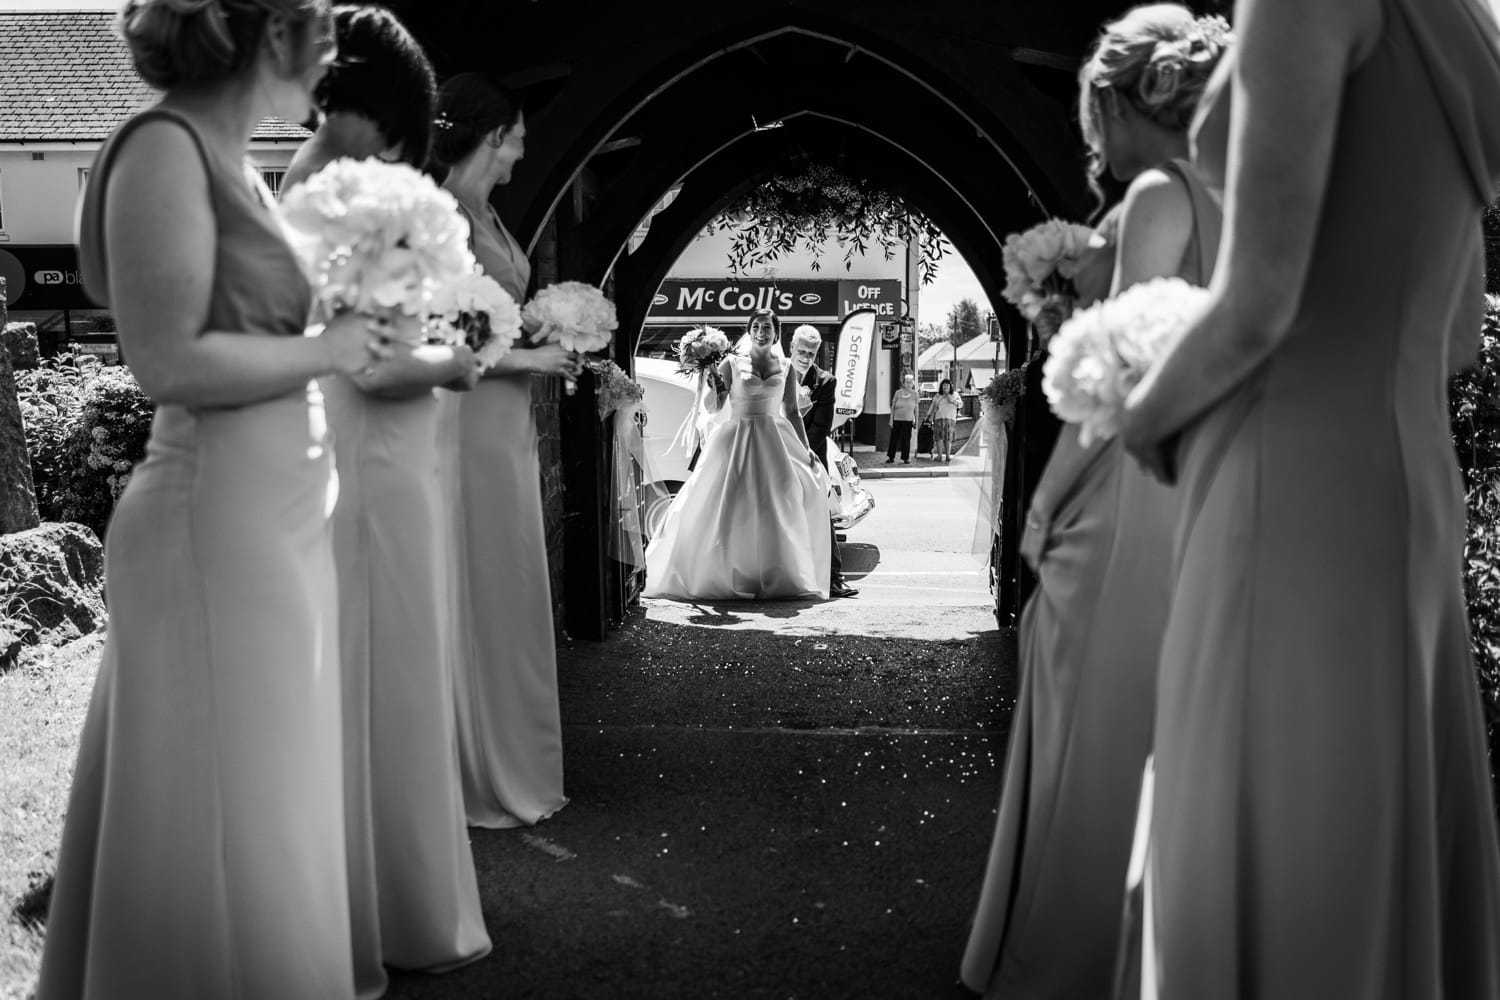 Bride arrives at St Isaan's Church in Llanishen, Cardiff